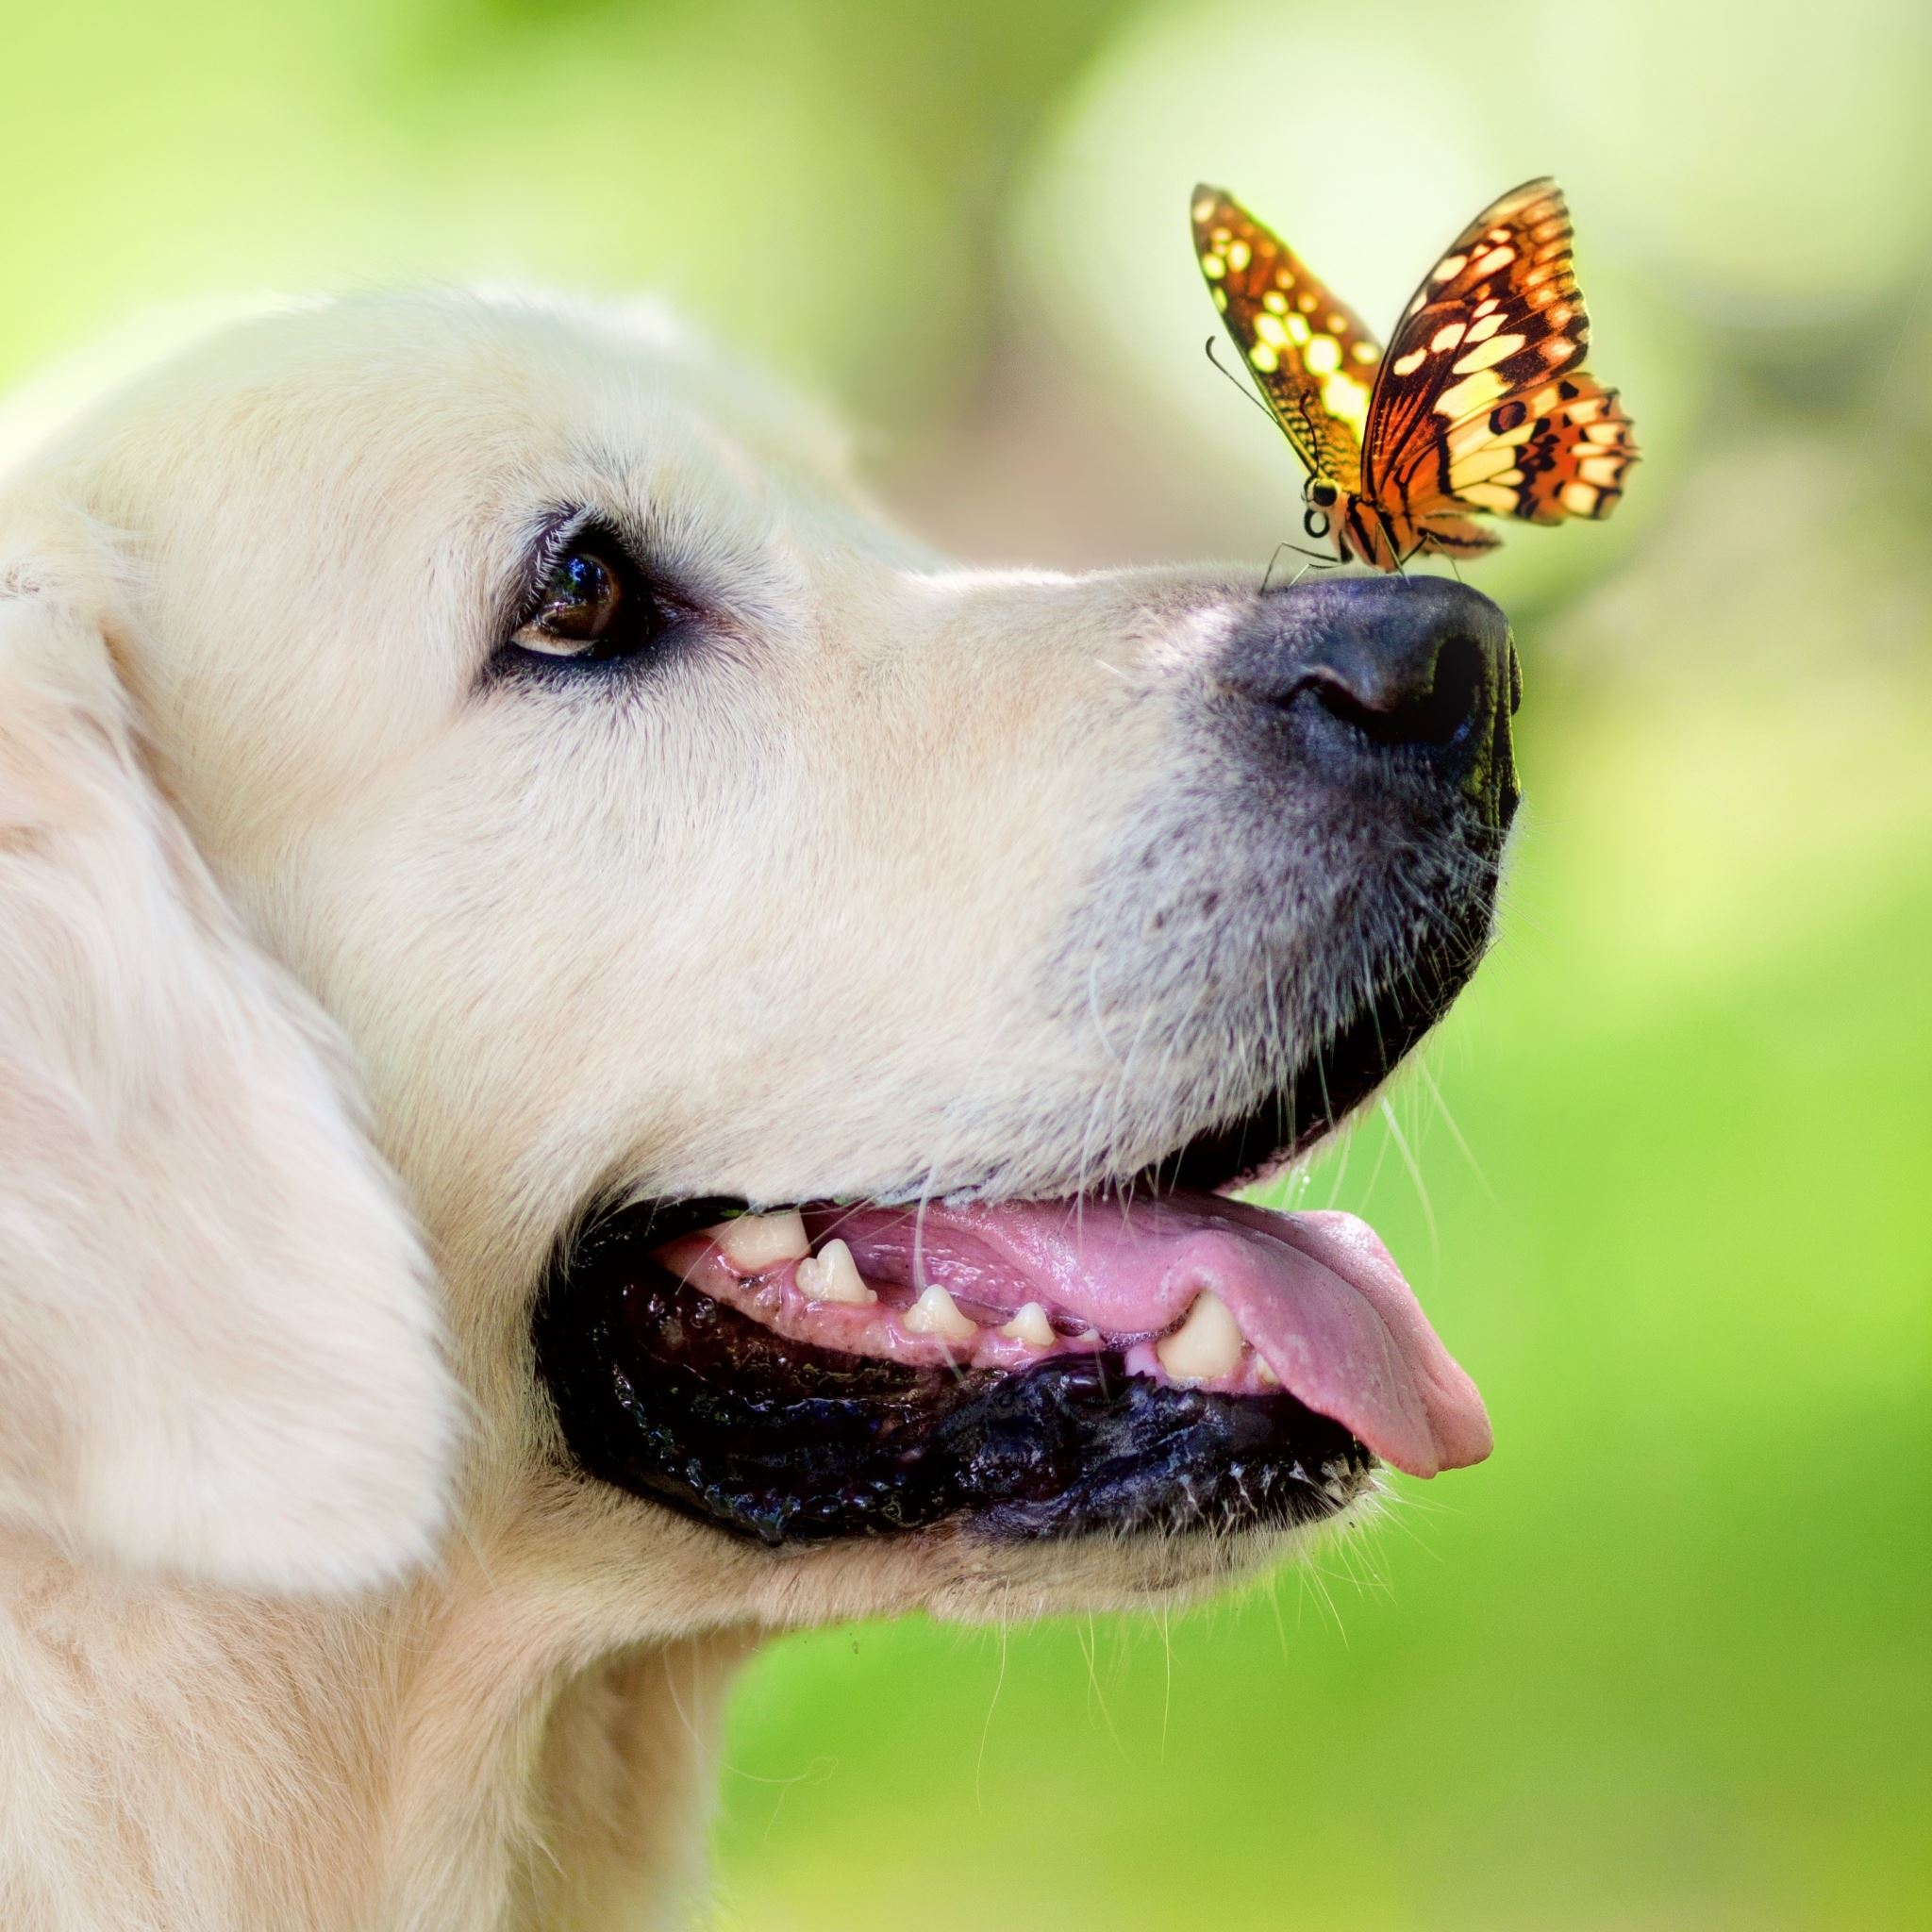 Dog Butterfly IPad Air Wallpapers Free Download